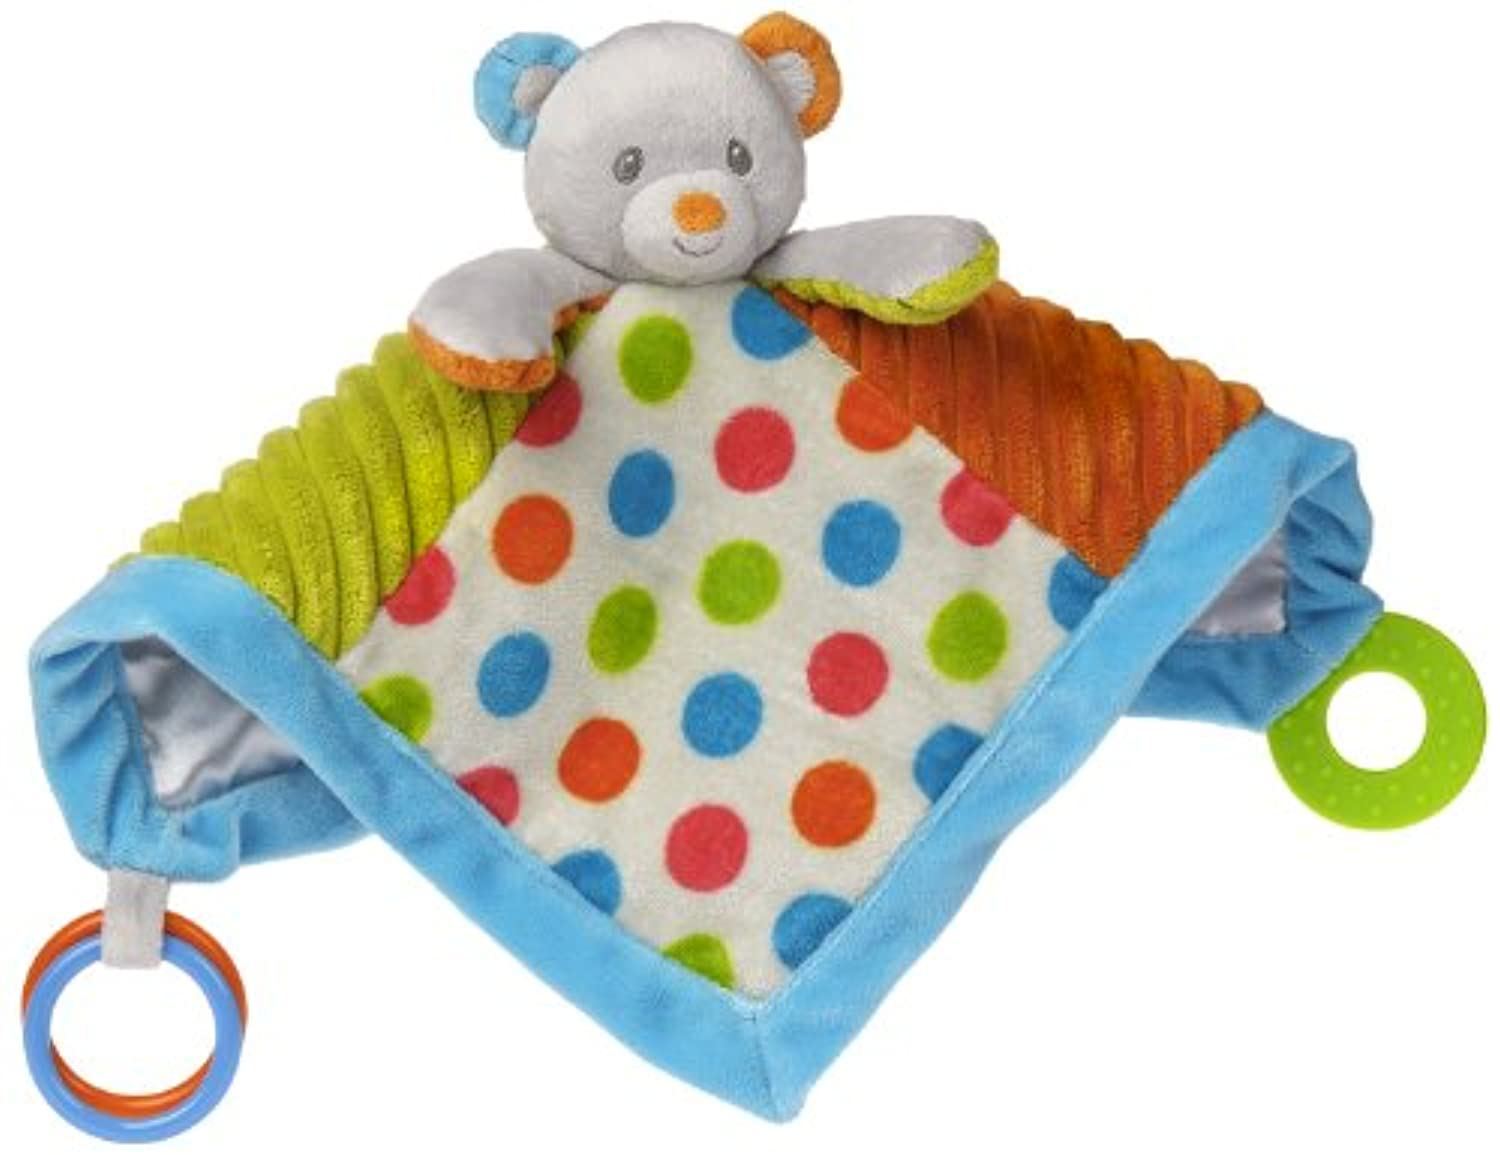 Mary Meyer Confetti Activity Blanket, Teddy by Mary Meyer